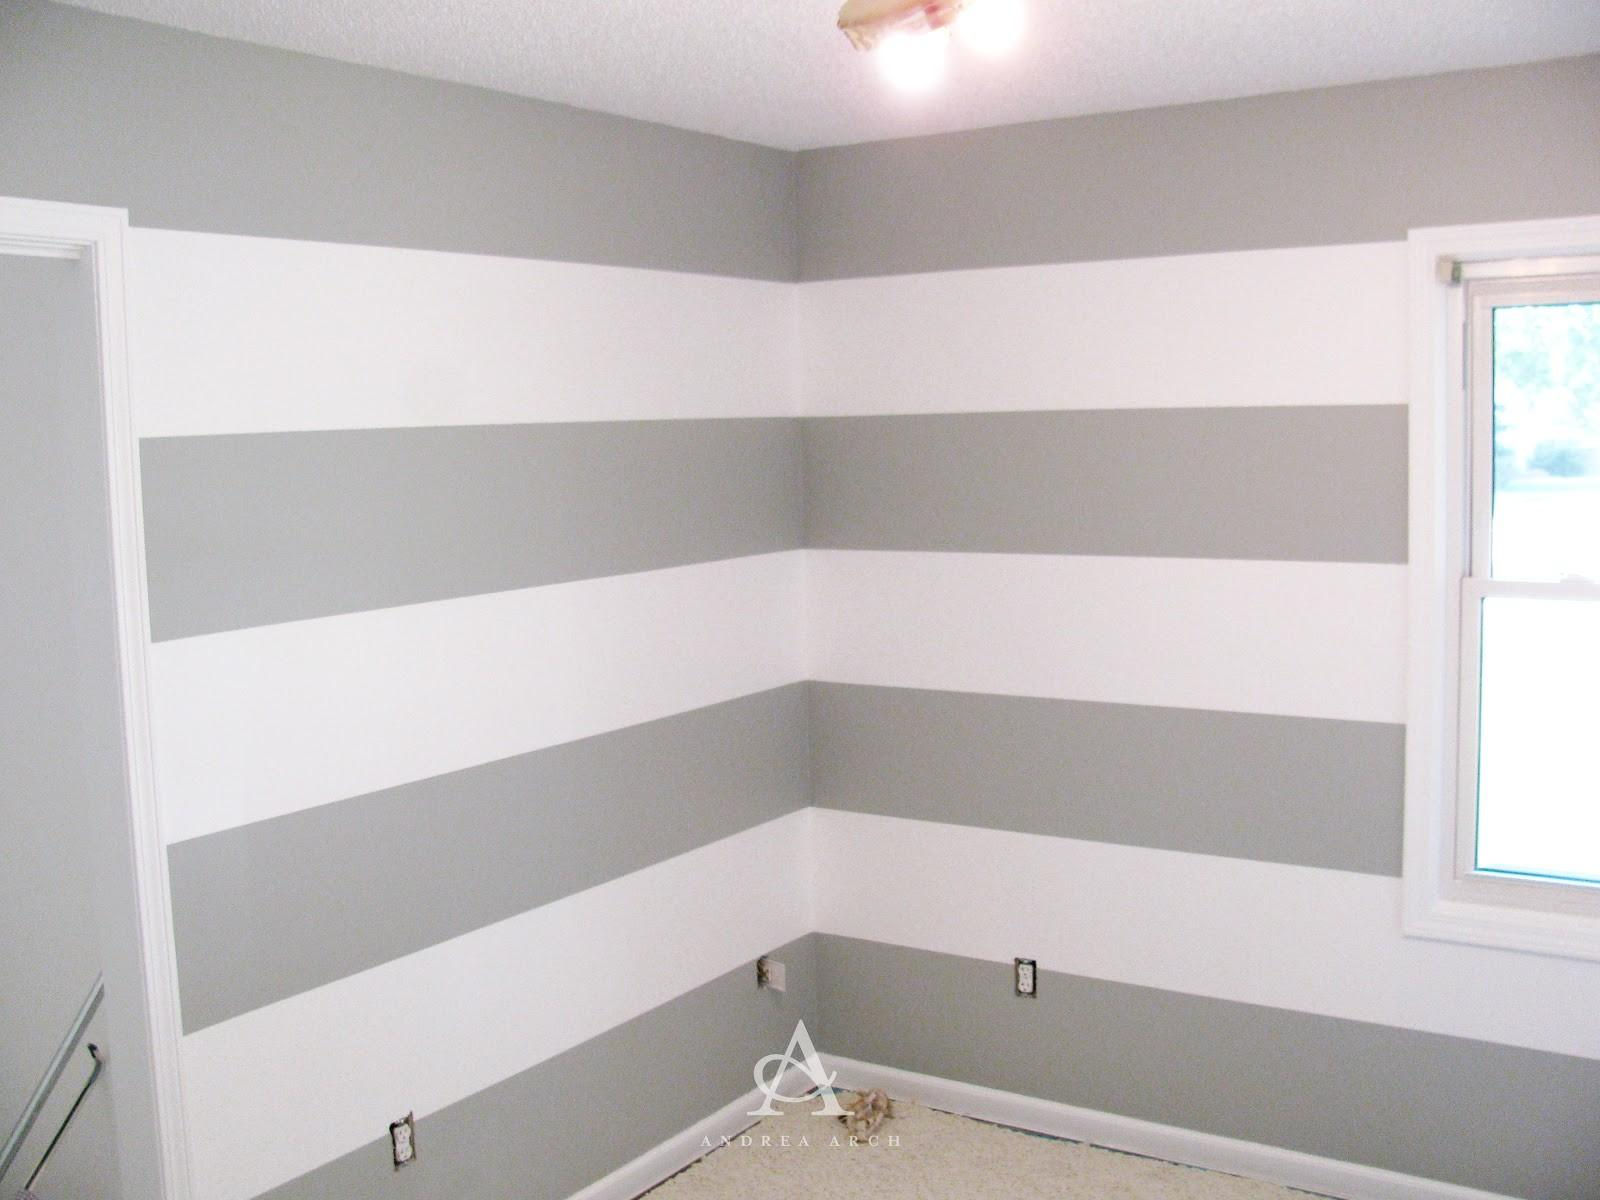 Andrea Arch Diy Paint Perfect Wall Stripes